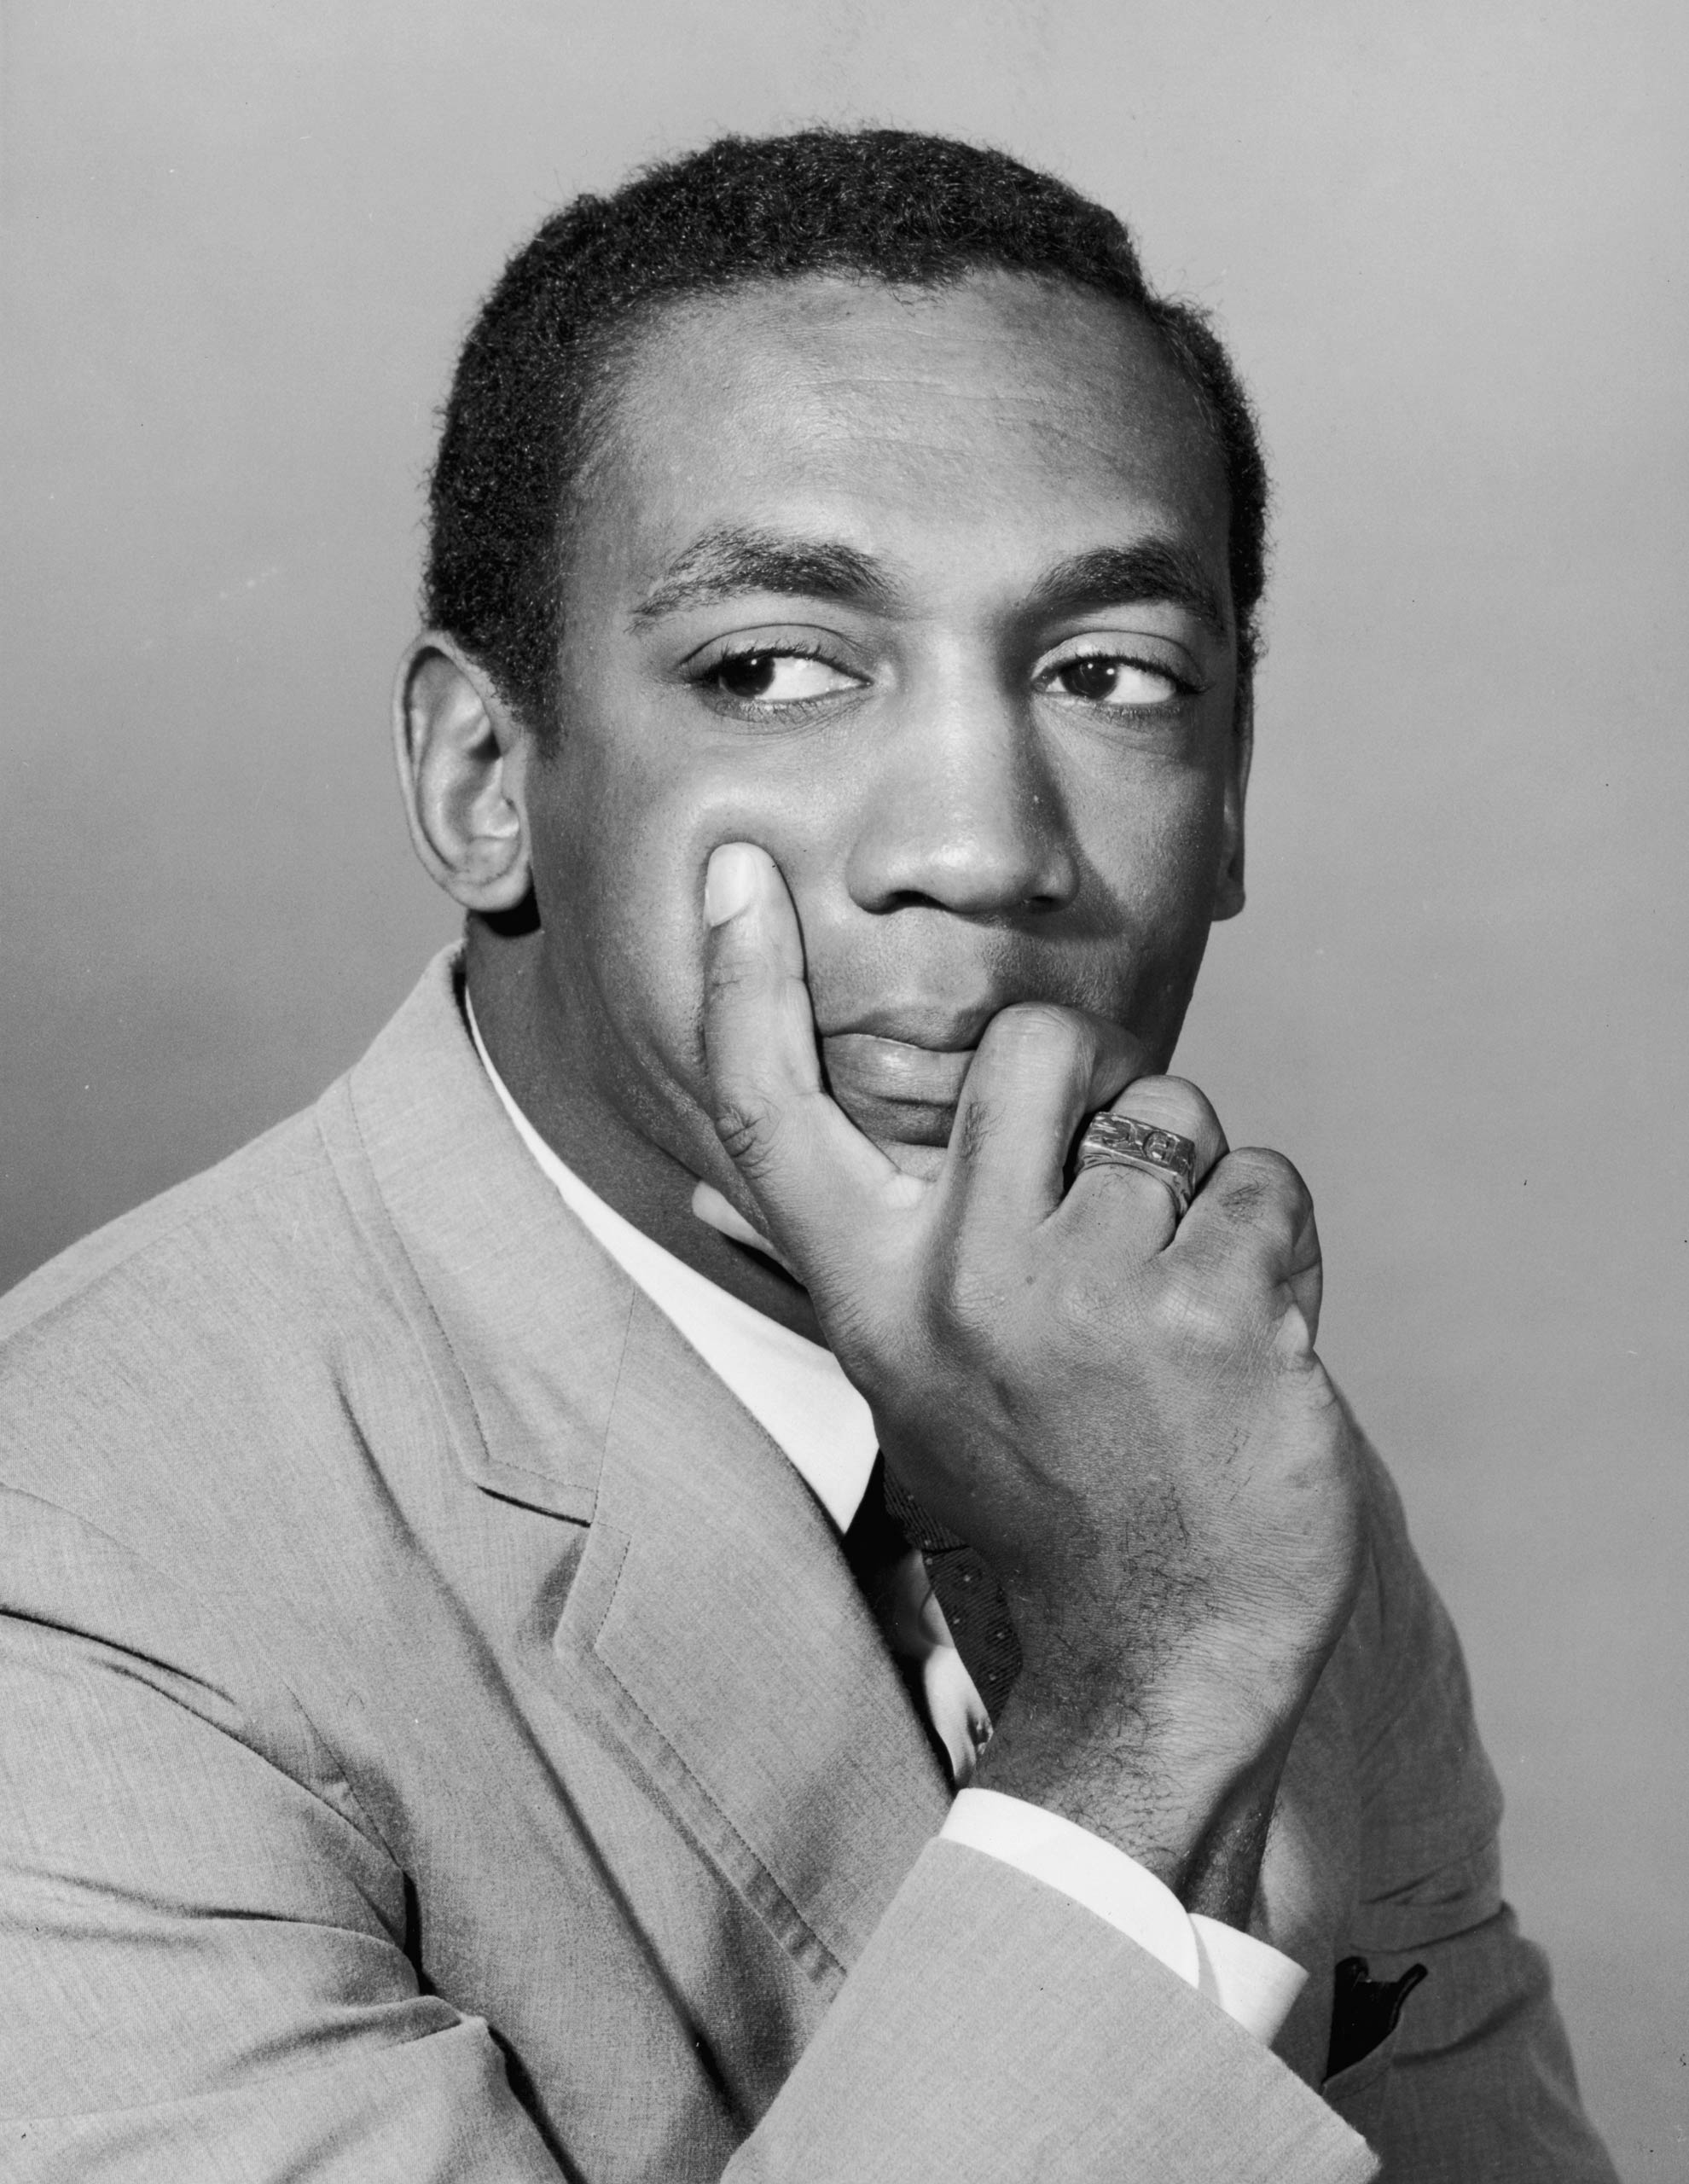 A portrait of Bill Cosby taken in 1965.